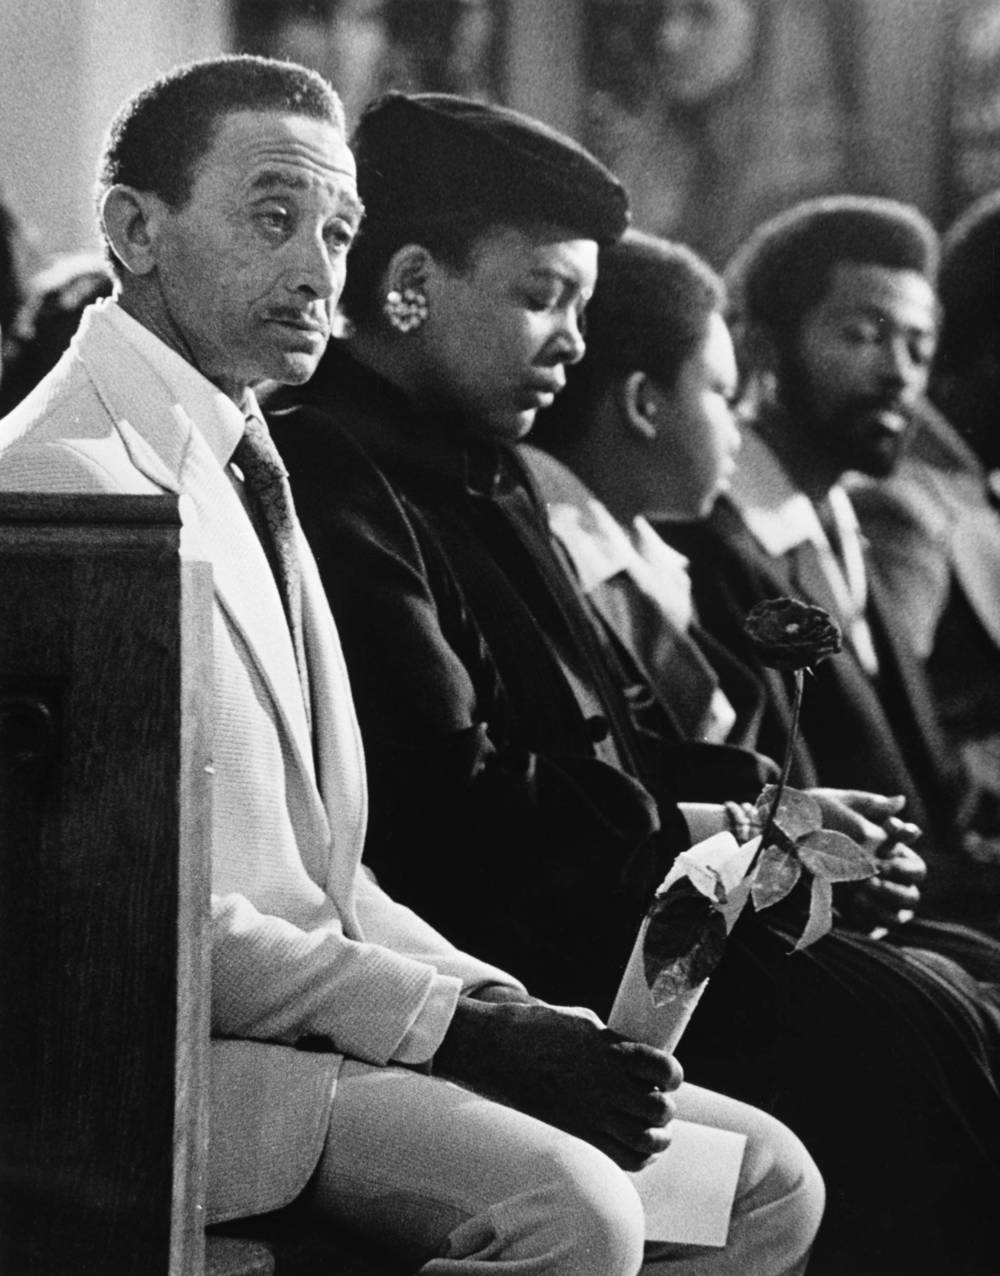 Father of murder victim Patrick Baltzar at the funeral service.  Photograph by George Clark (1981) Atlanta Journal-Constitution Photographic Archives. Special Collections and Archives, Georgia State University Library.